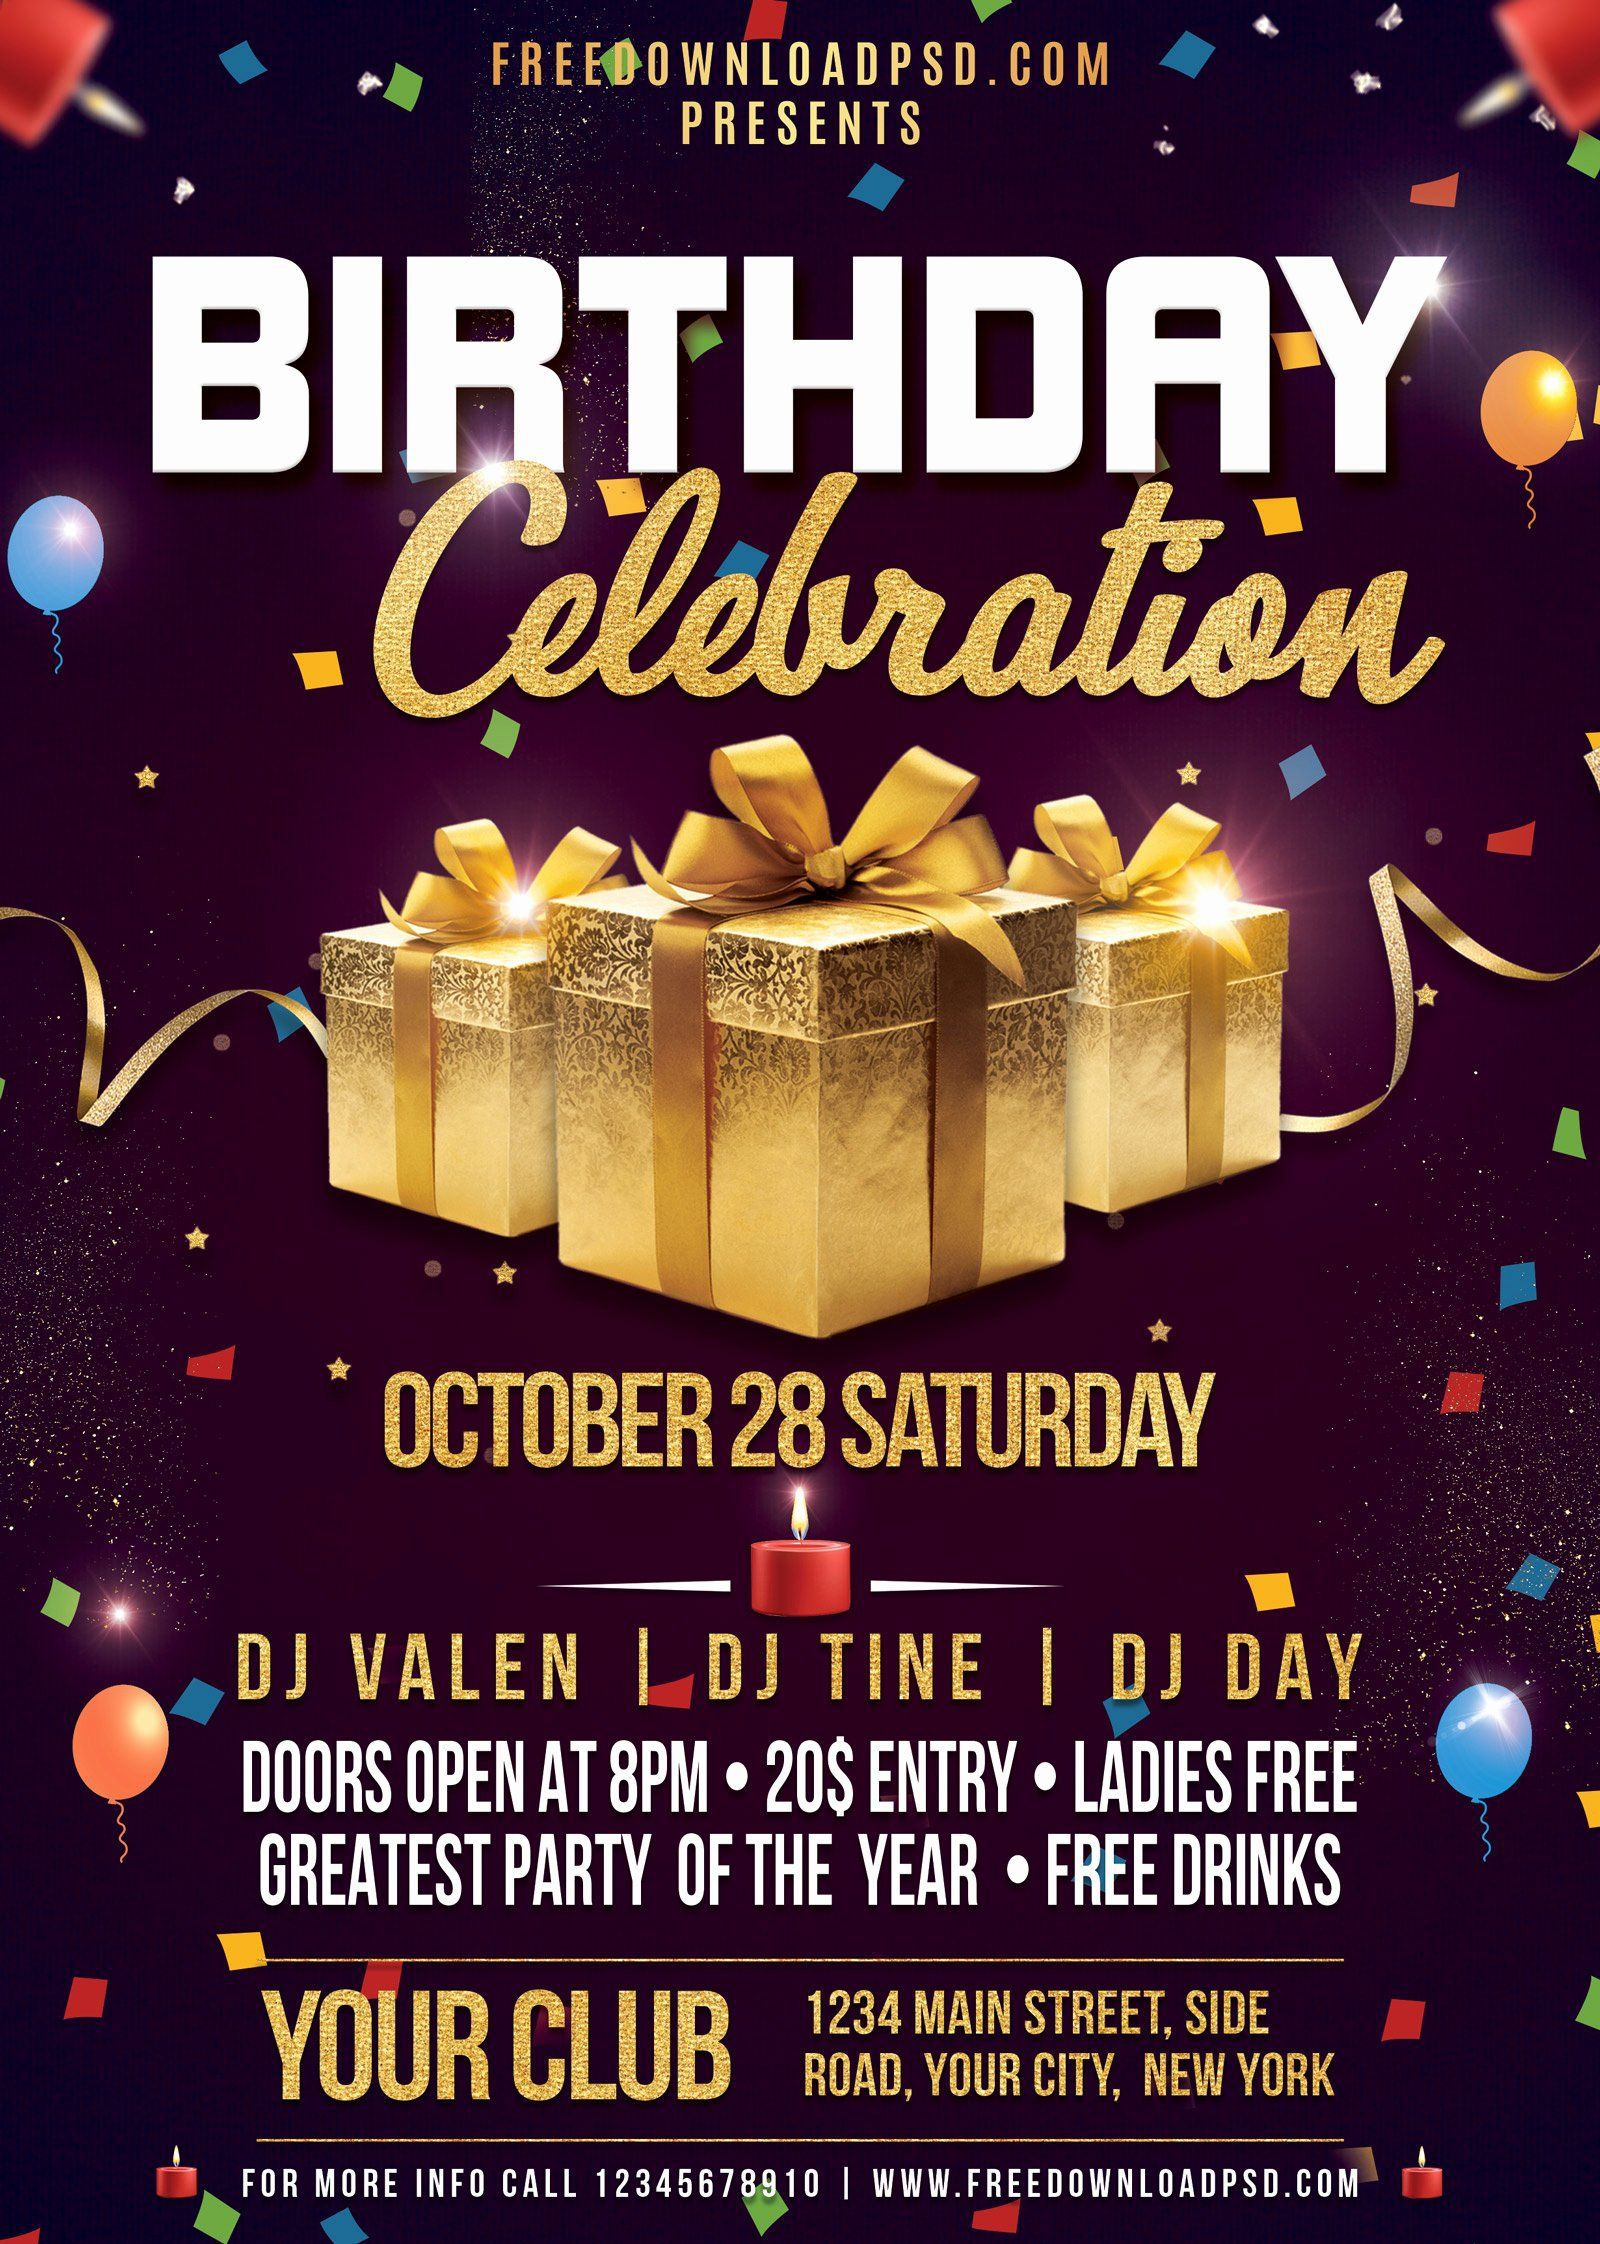 000 Frightening Birthday Flyer Template Psd Free Download Photo Full